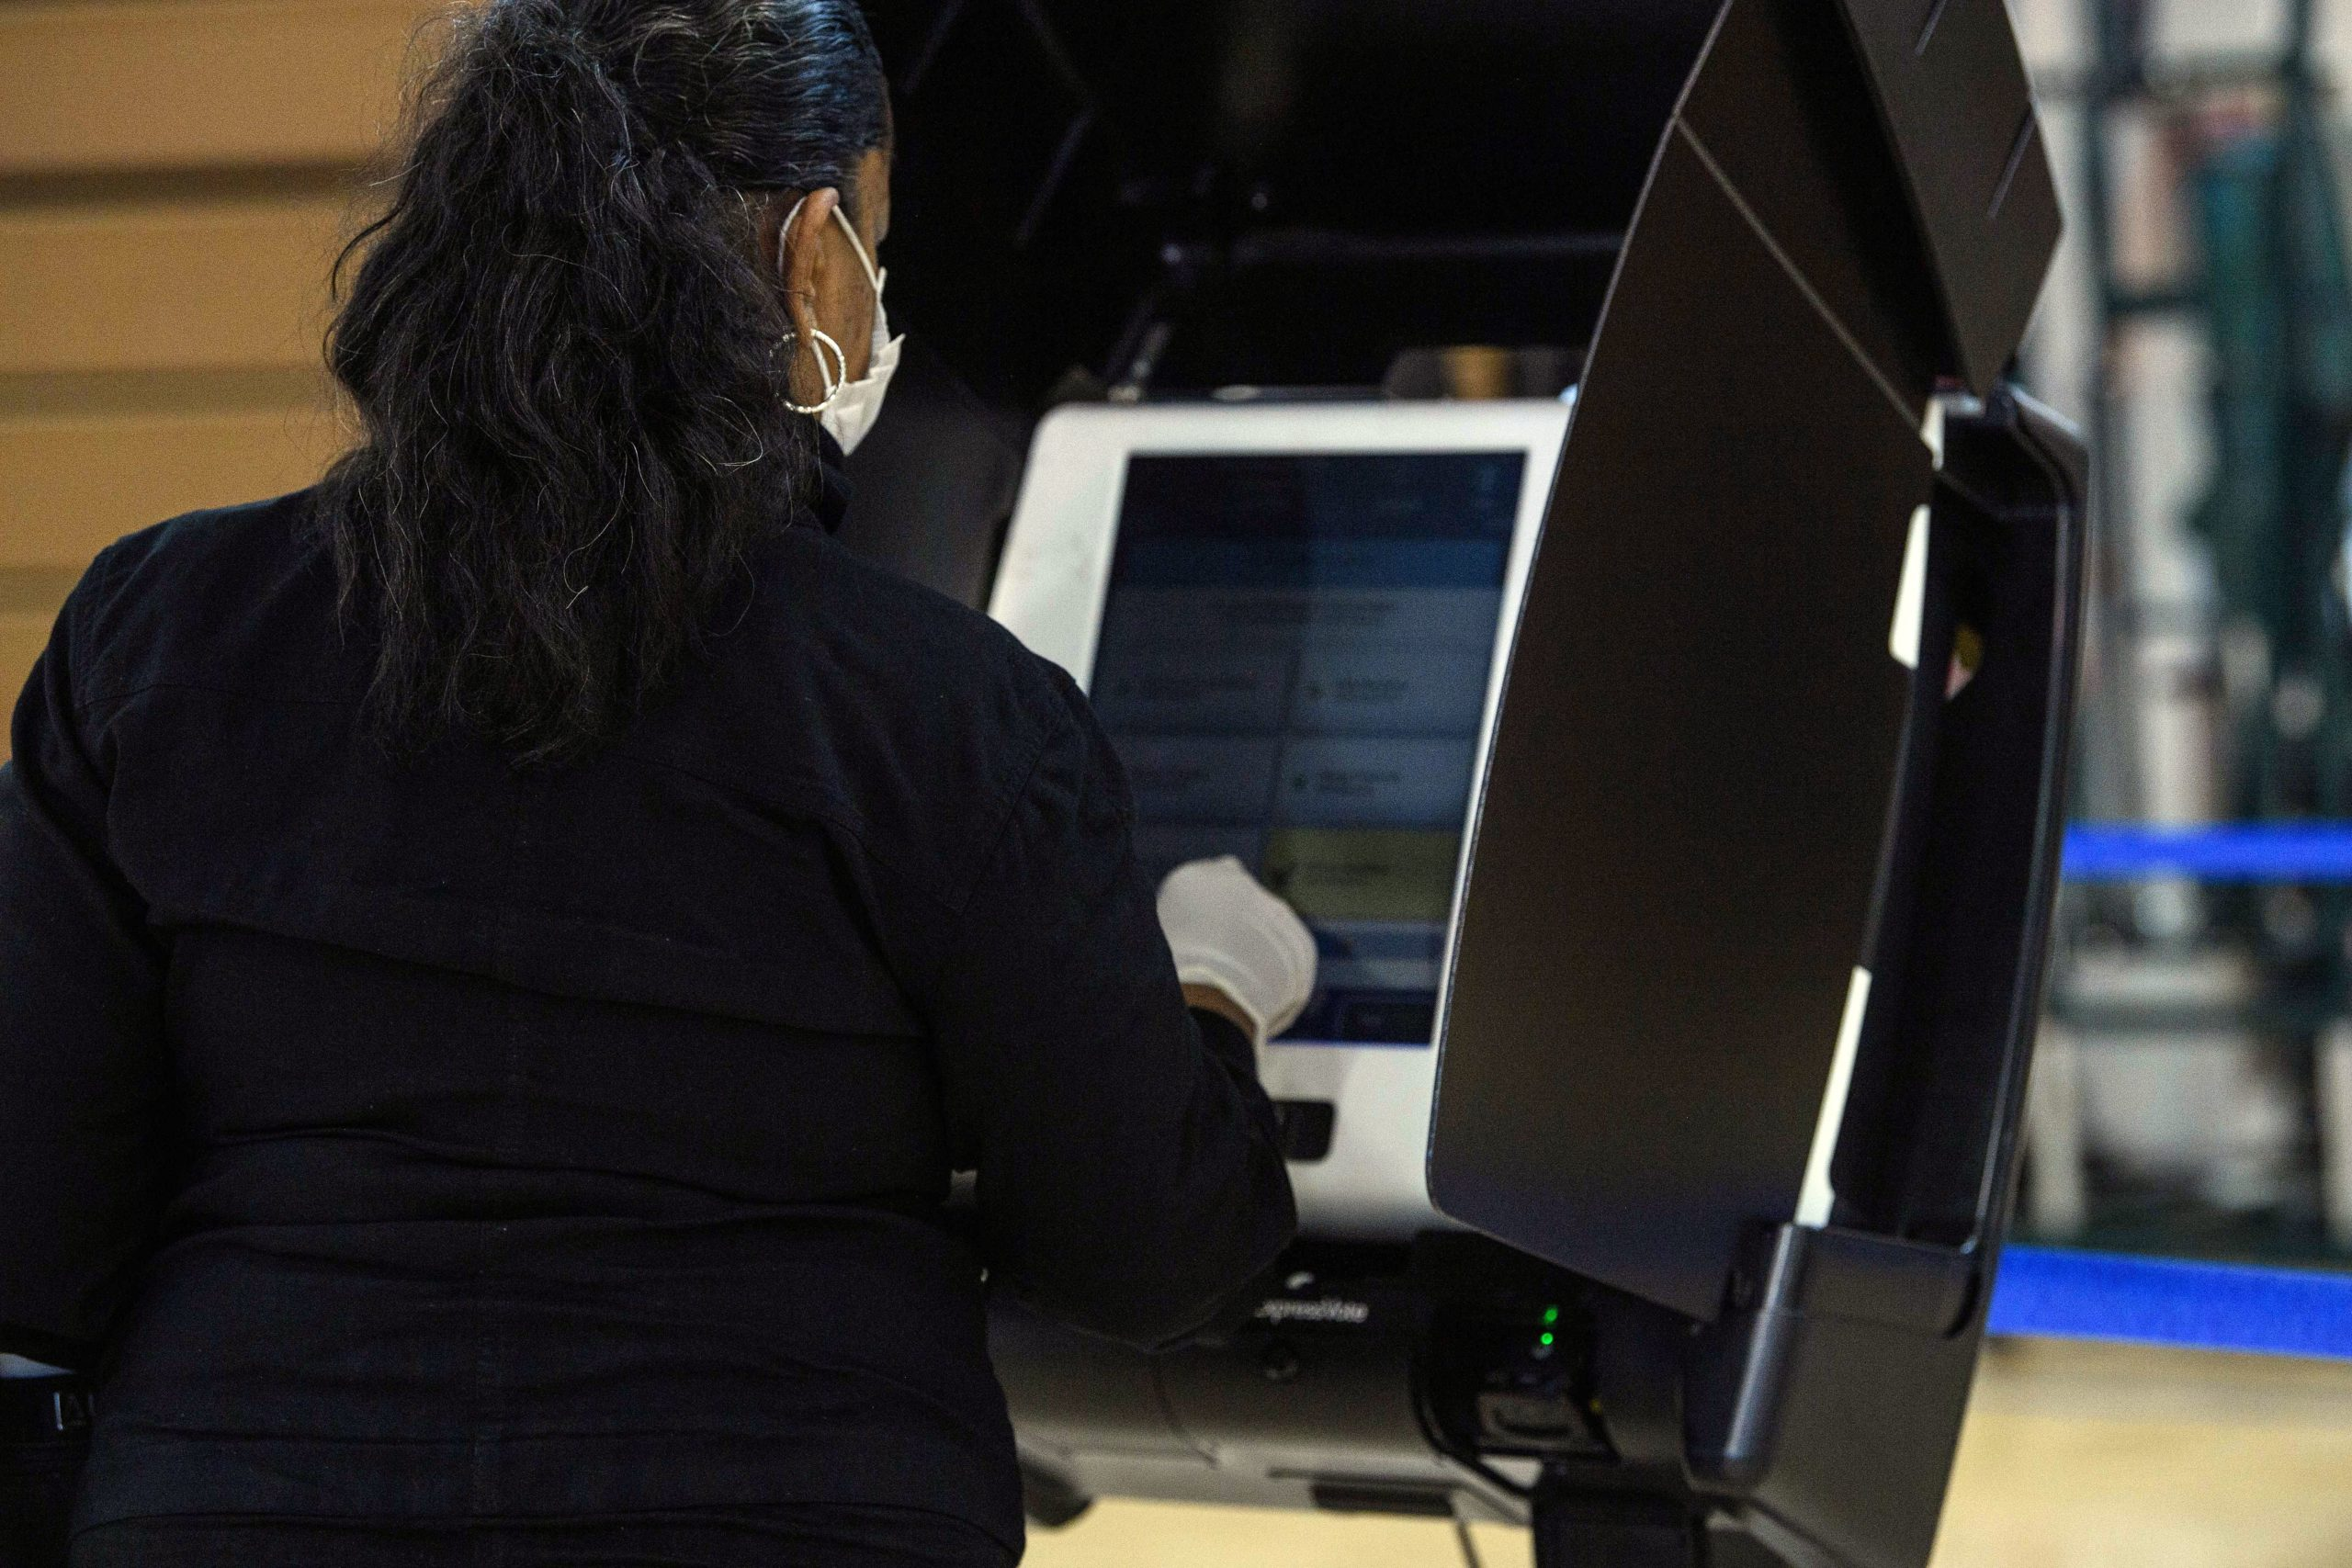 A woman uses an electronic voting machine at a polling station in Washington, DC, on October 29, 2020 during early voting. (Photo by NICHOLAS KAMM / AFP) (Photo by NICHOLAS KAMM/AFP via Getty Images)